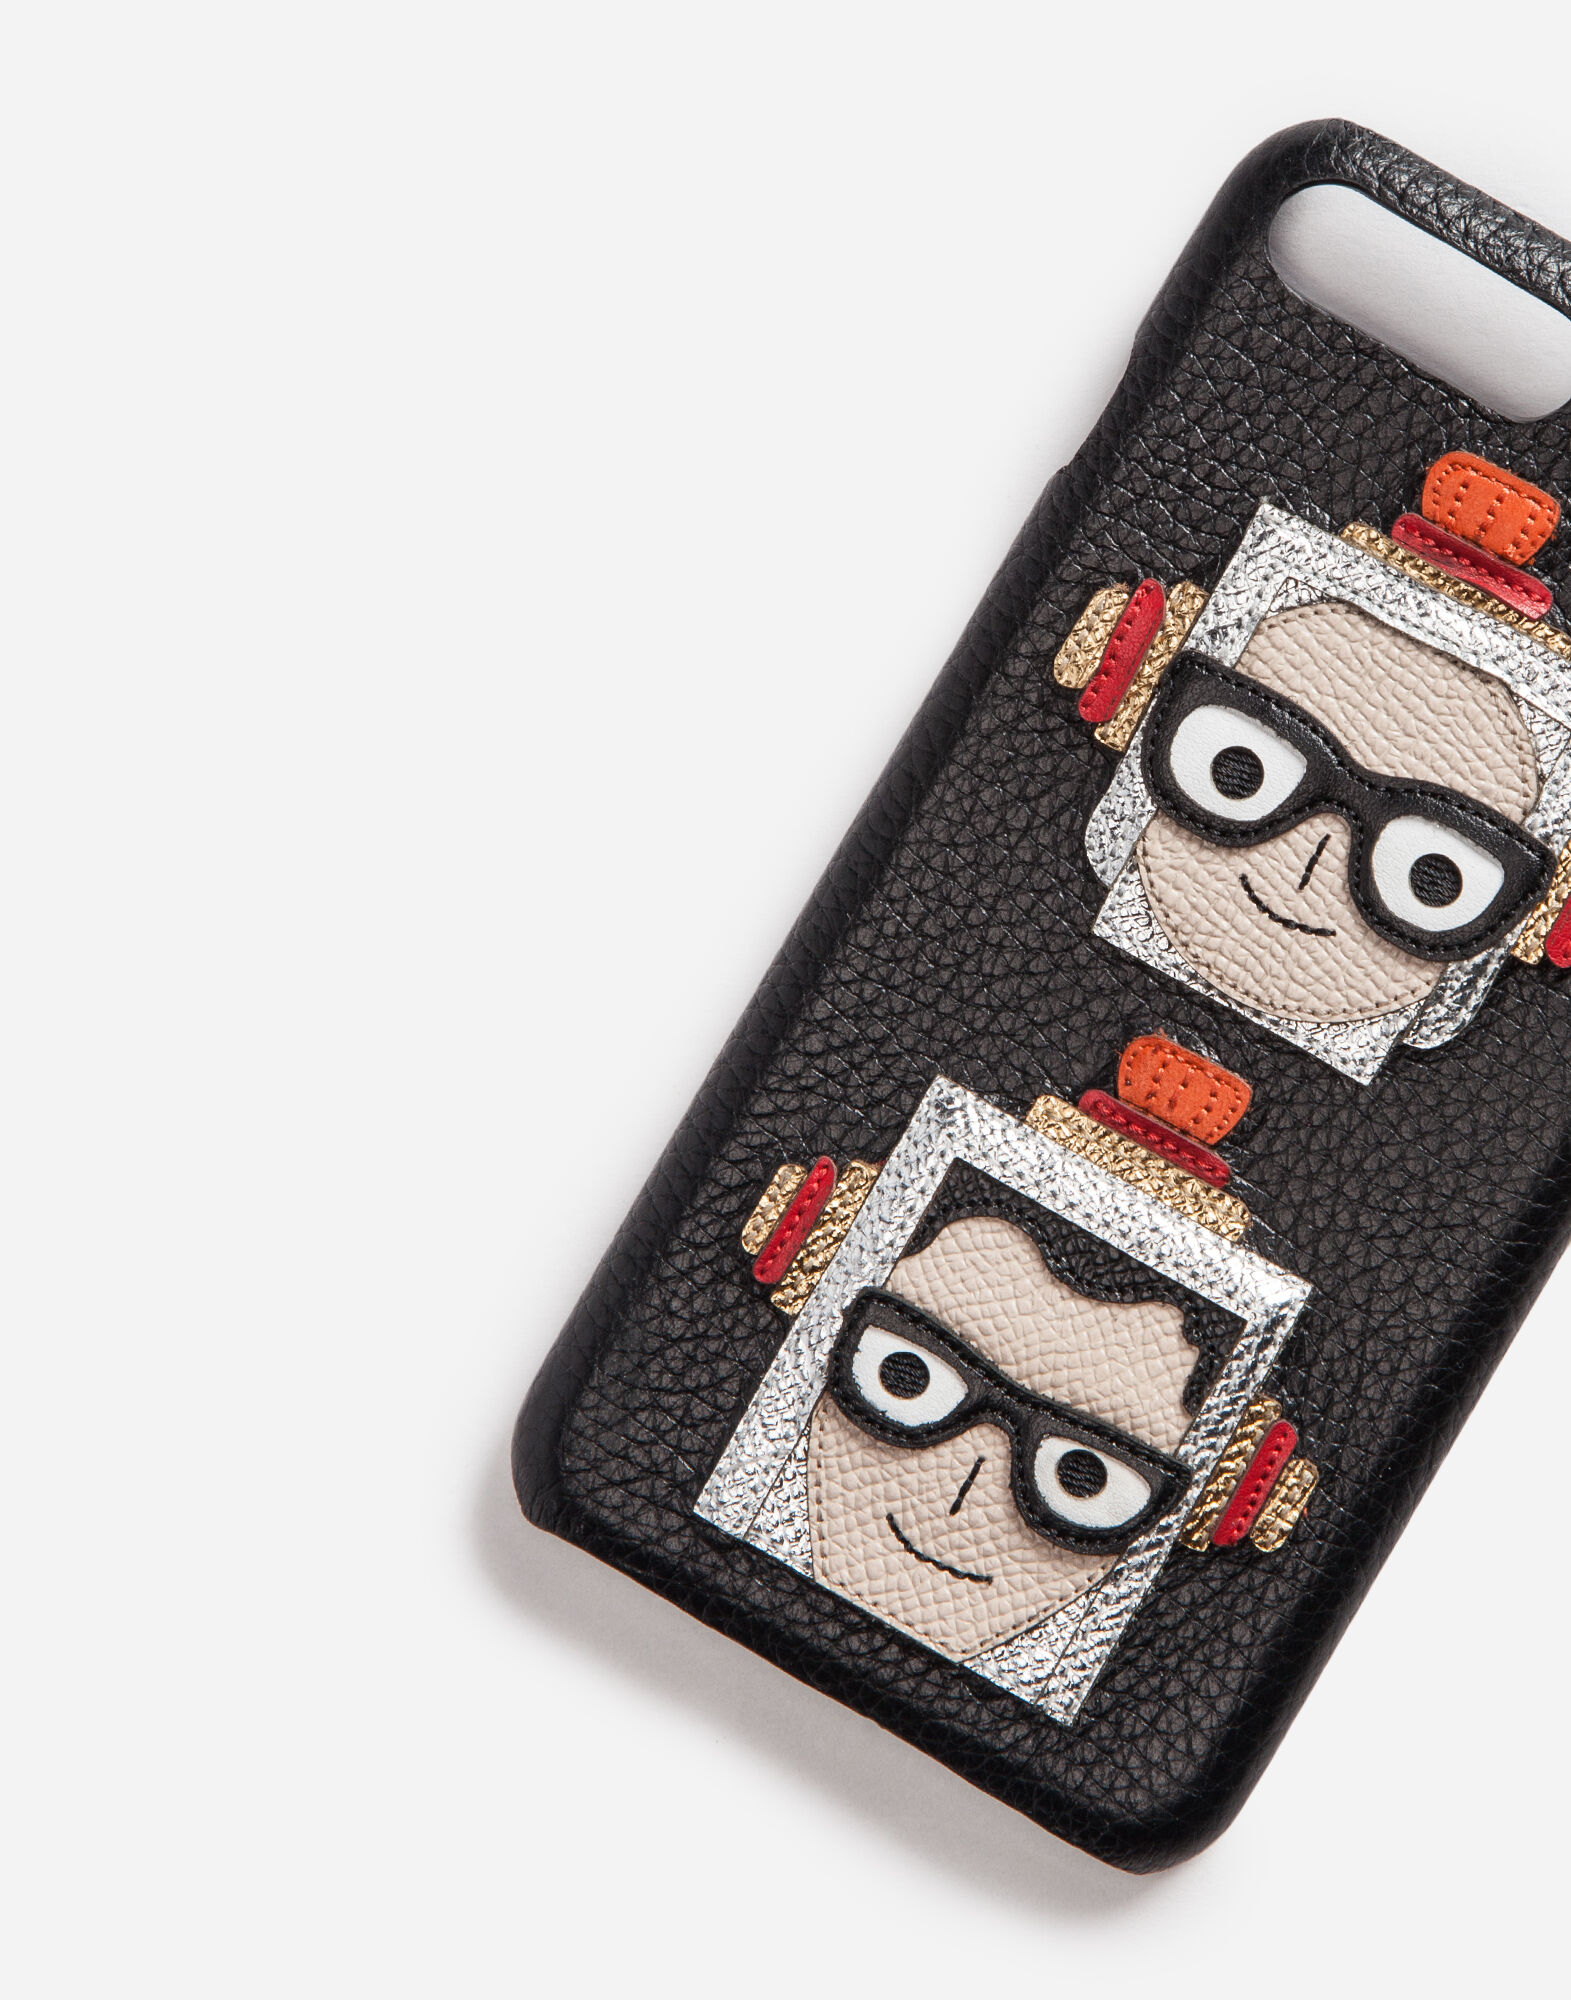 Dolce&Gabbana IPHONE 7 PLUS COVER WITH PATCHES OF THE DESIGNERS